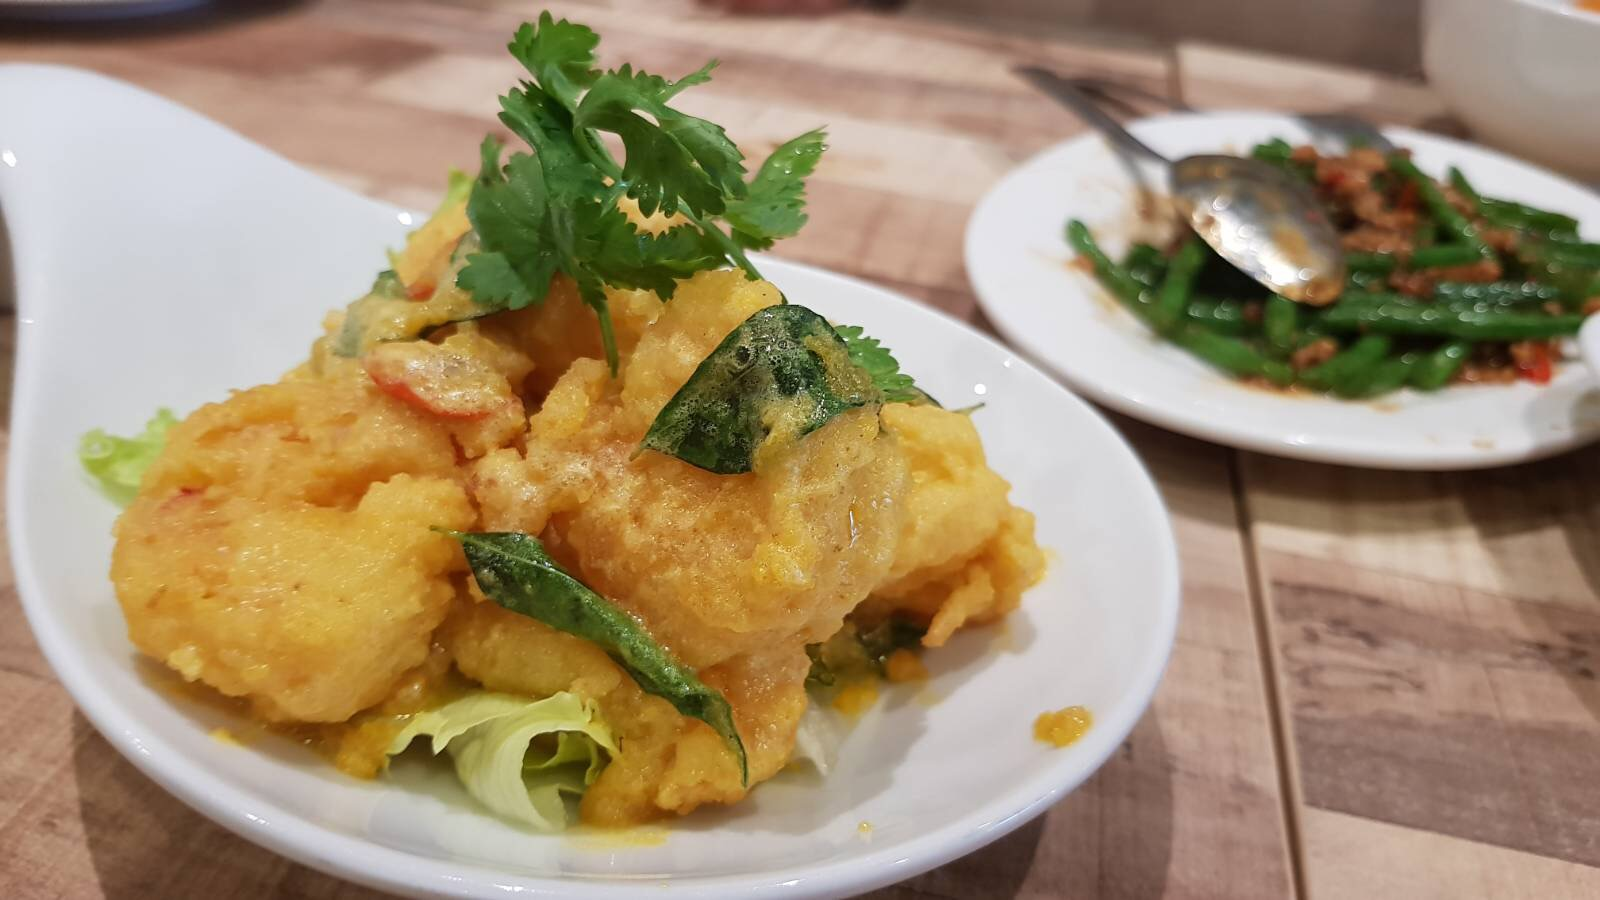 Salted egg prawn - 咸蛋黄虾球